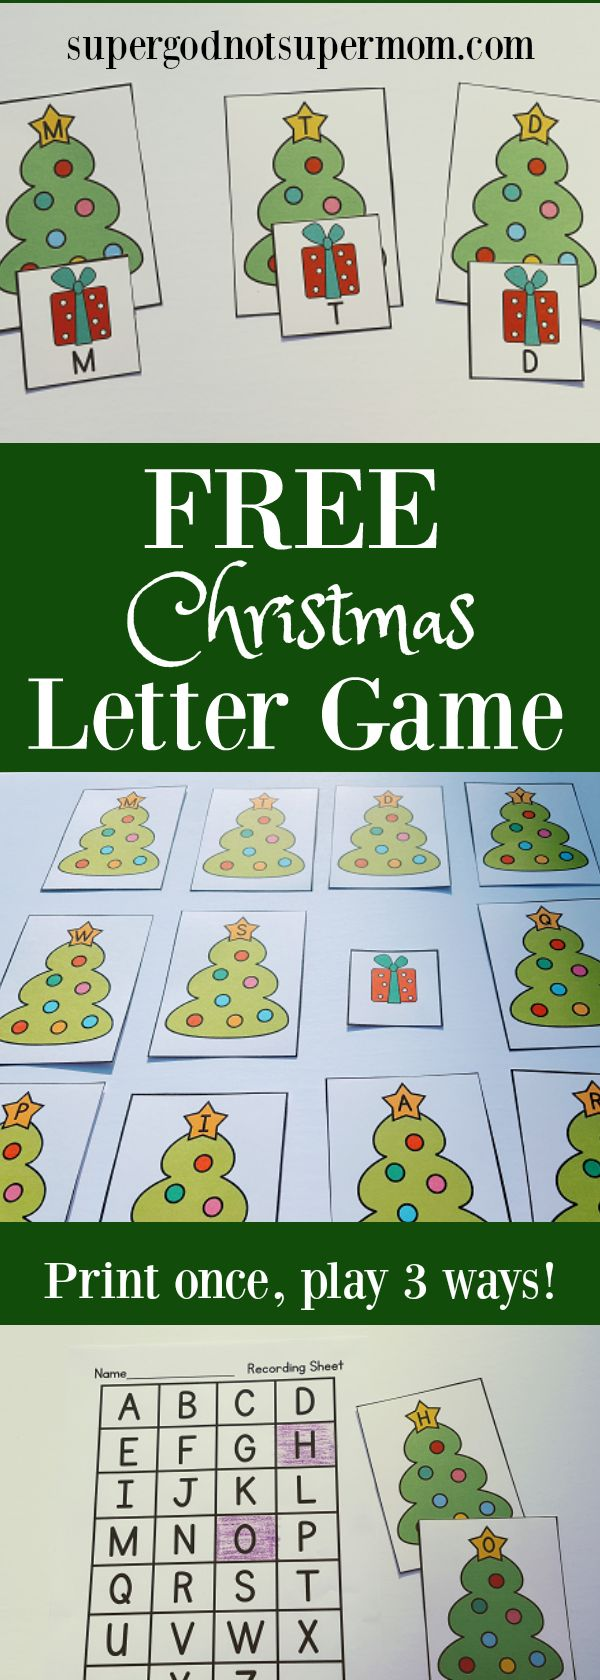 FREE Christmas Letter Game!  Print once and Play 3 different ways!  supergodnotsupermom.com